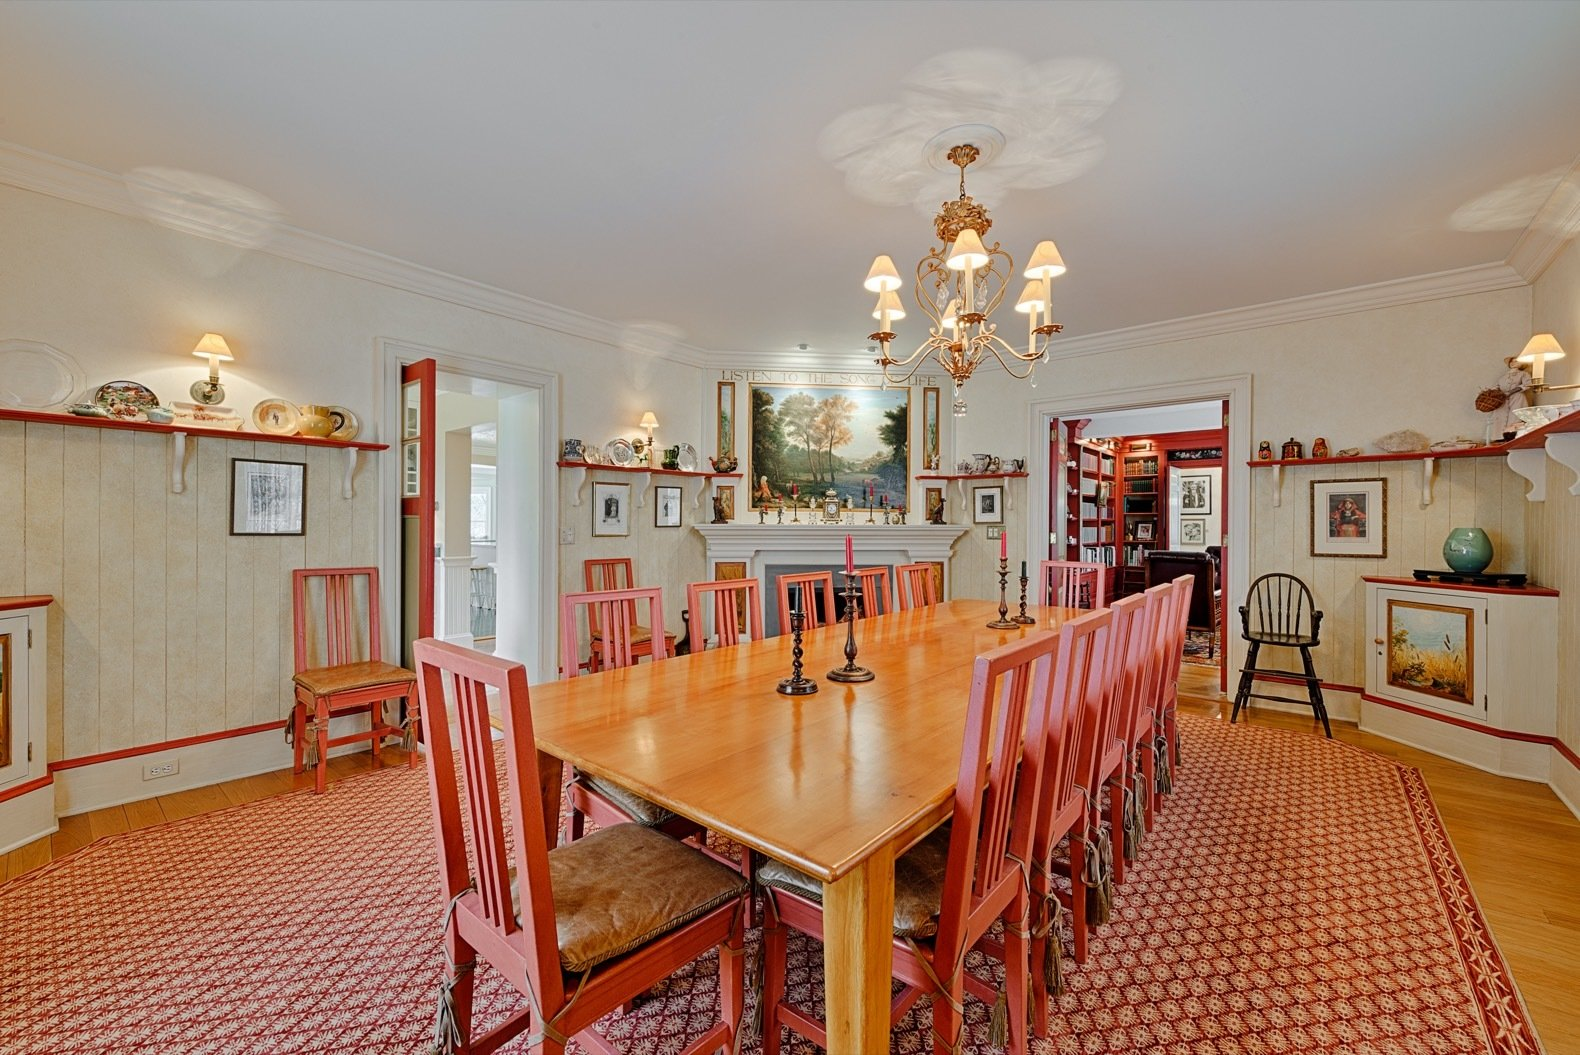 Dining, Chair, Accent, Medium Hardwood, and Table The dining room's warm color scheme was inspired by the Lilla Hytnnas dining room by Swedish artist Carl Larsson.   Best Dining Accent Chair Medium Hardwood Photos from Glenn Close Lists Her Storybook Estate in New York For $3.6M